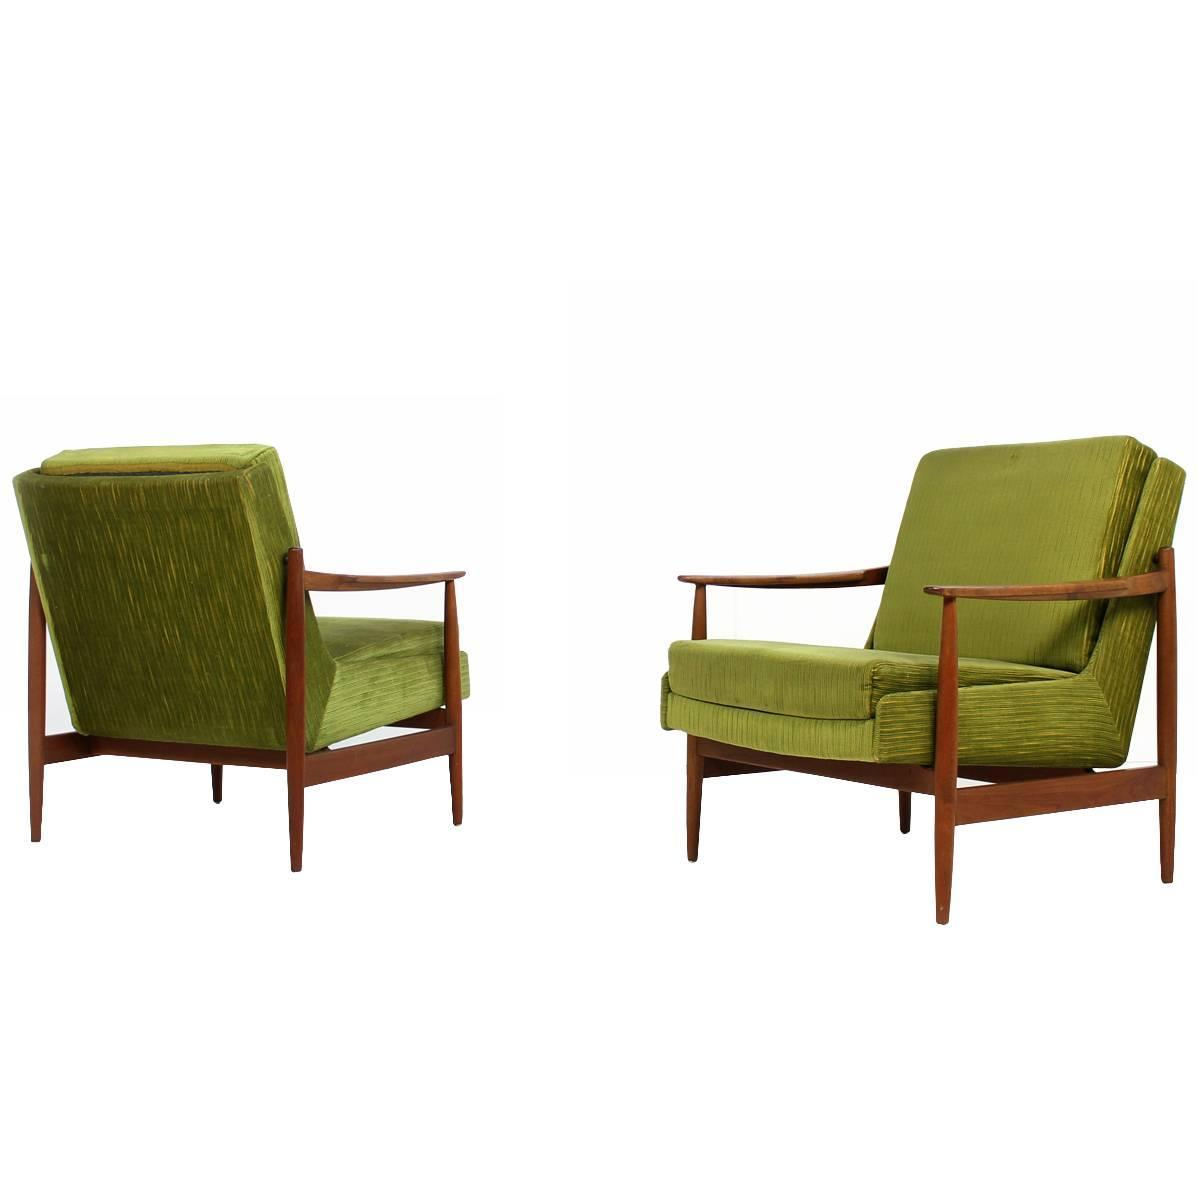 pair of midcentury modern teak lounge easy chairs by eugen schmidt s with chaise schmidt. Black Bedroom Furniture Sets. Home Design Ideas